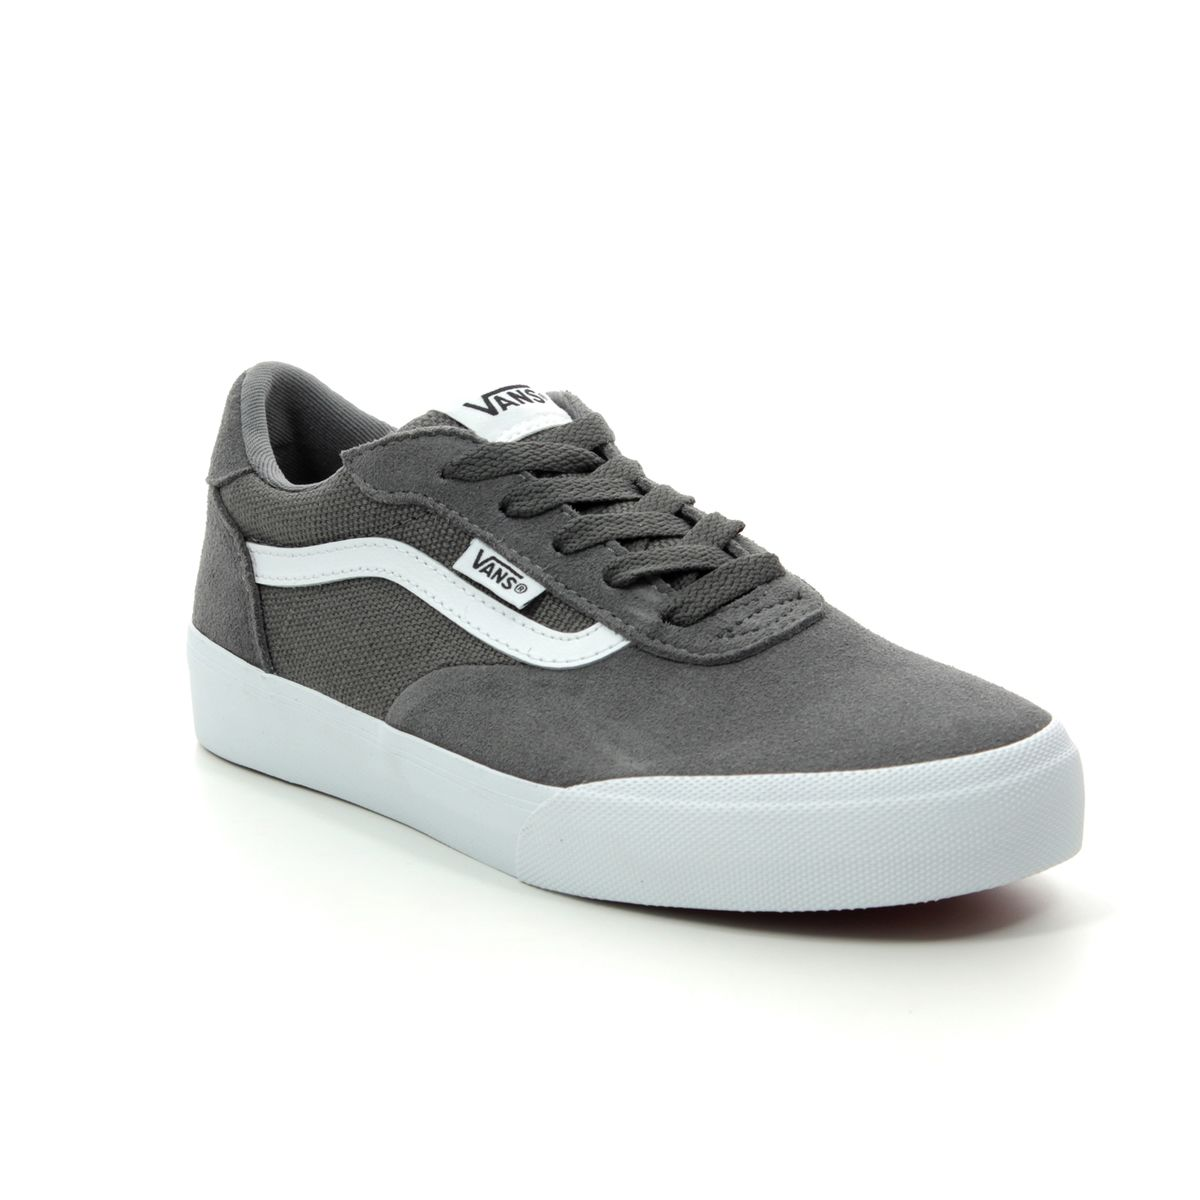 6b3729ebf0 Vans Trainers - Dark Grey - VN0A3WMXQ 35 PALOMAR YOUTH